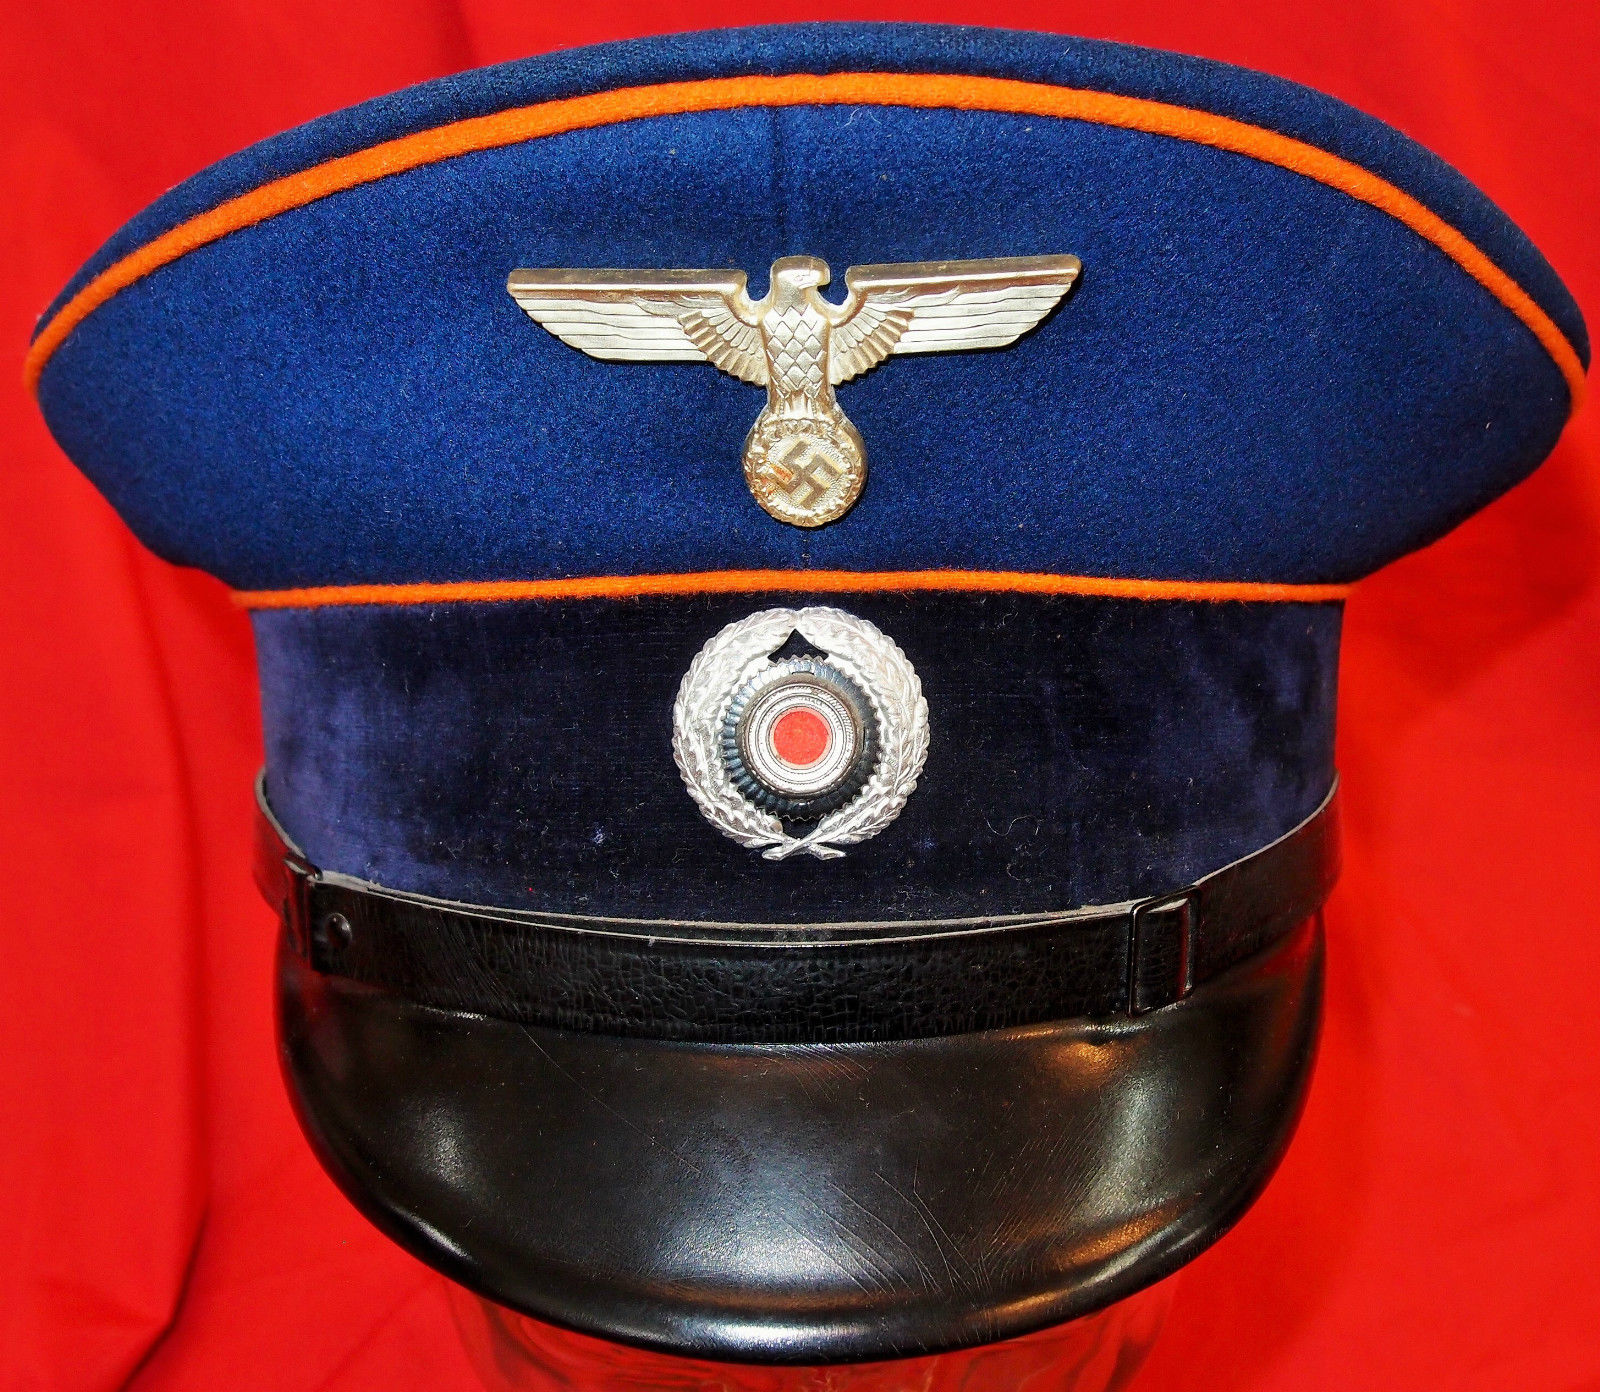 WW2 GERMAN POSTAL OFFICIAL'S SERVICE PEAKED SERVICE CAP